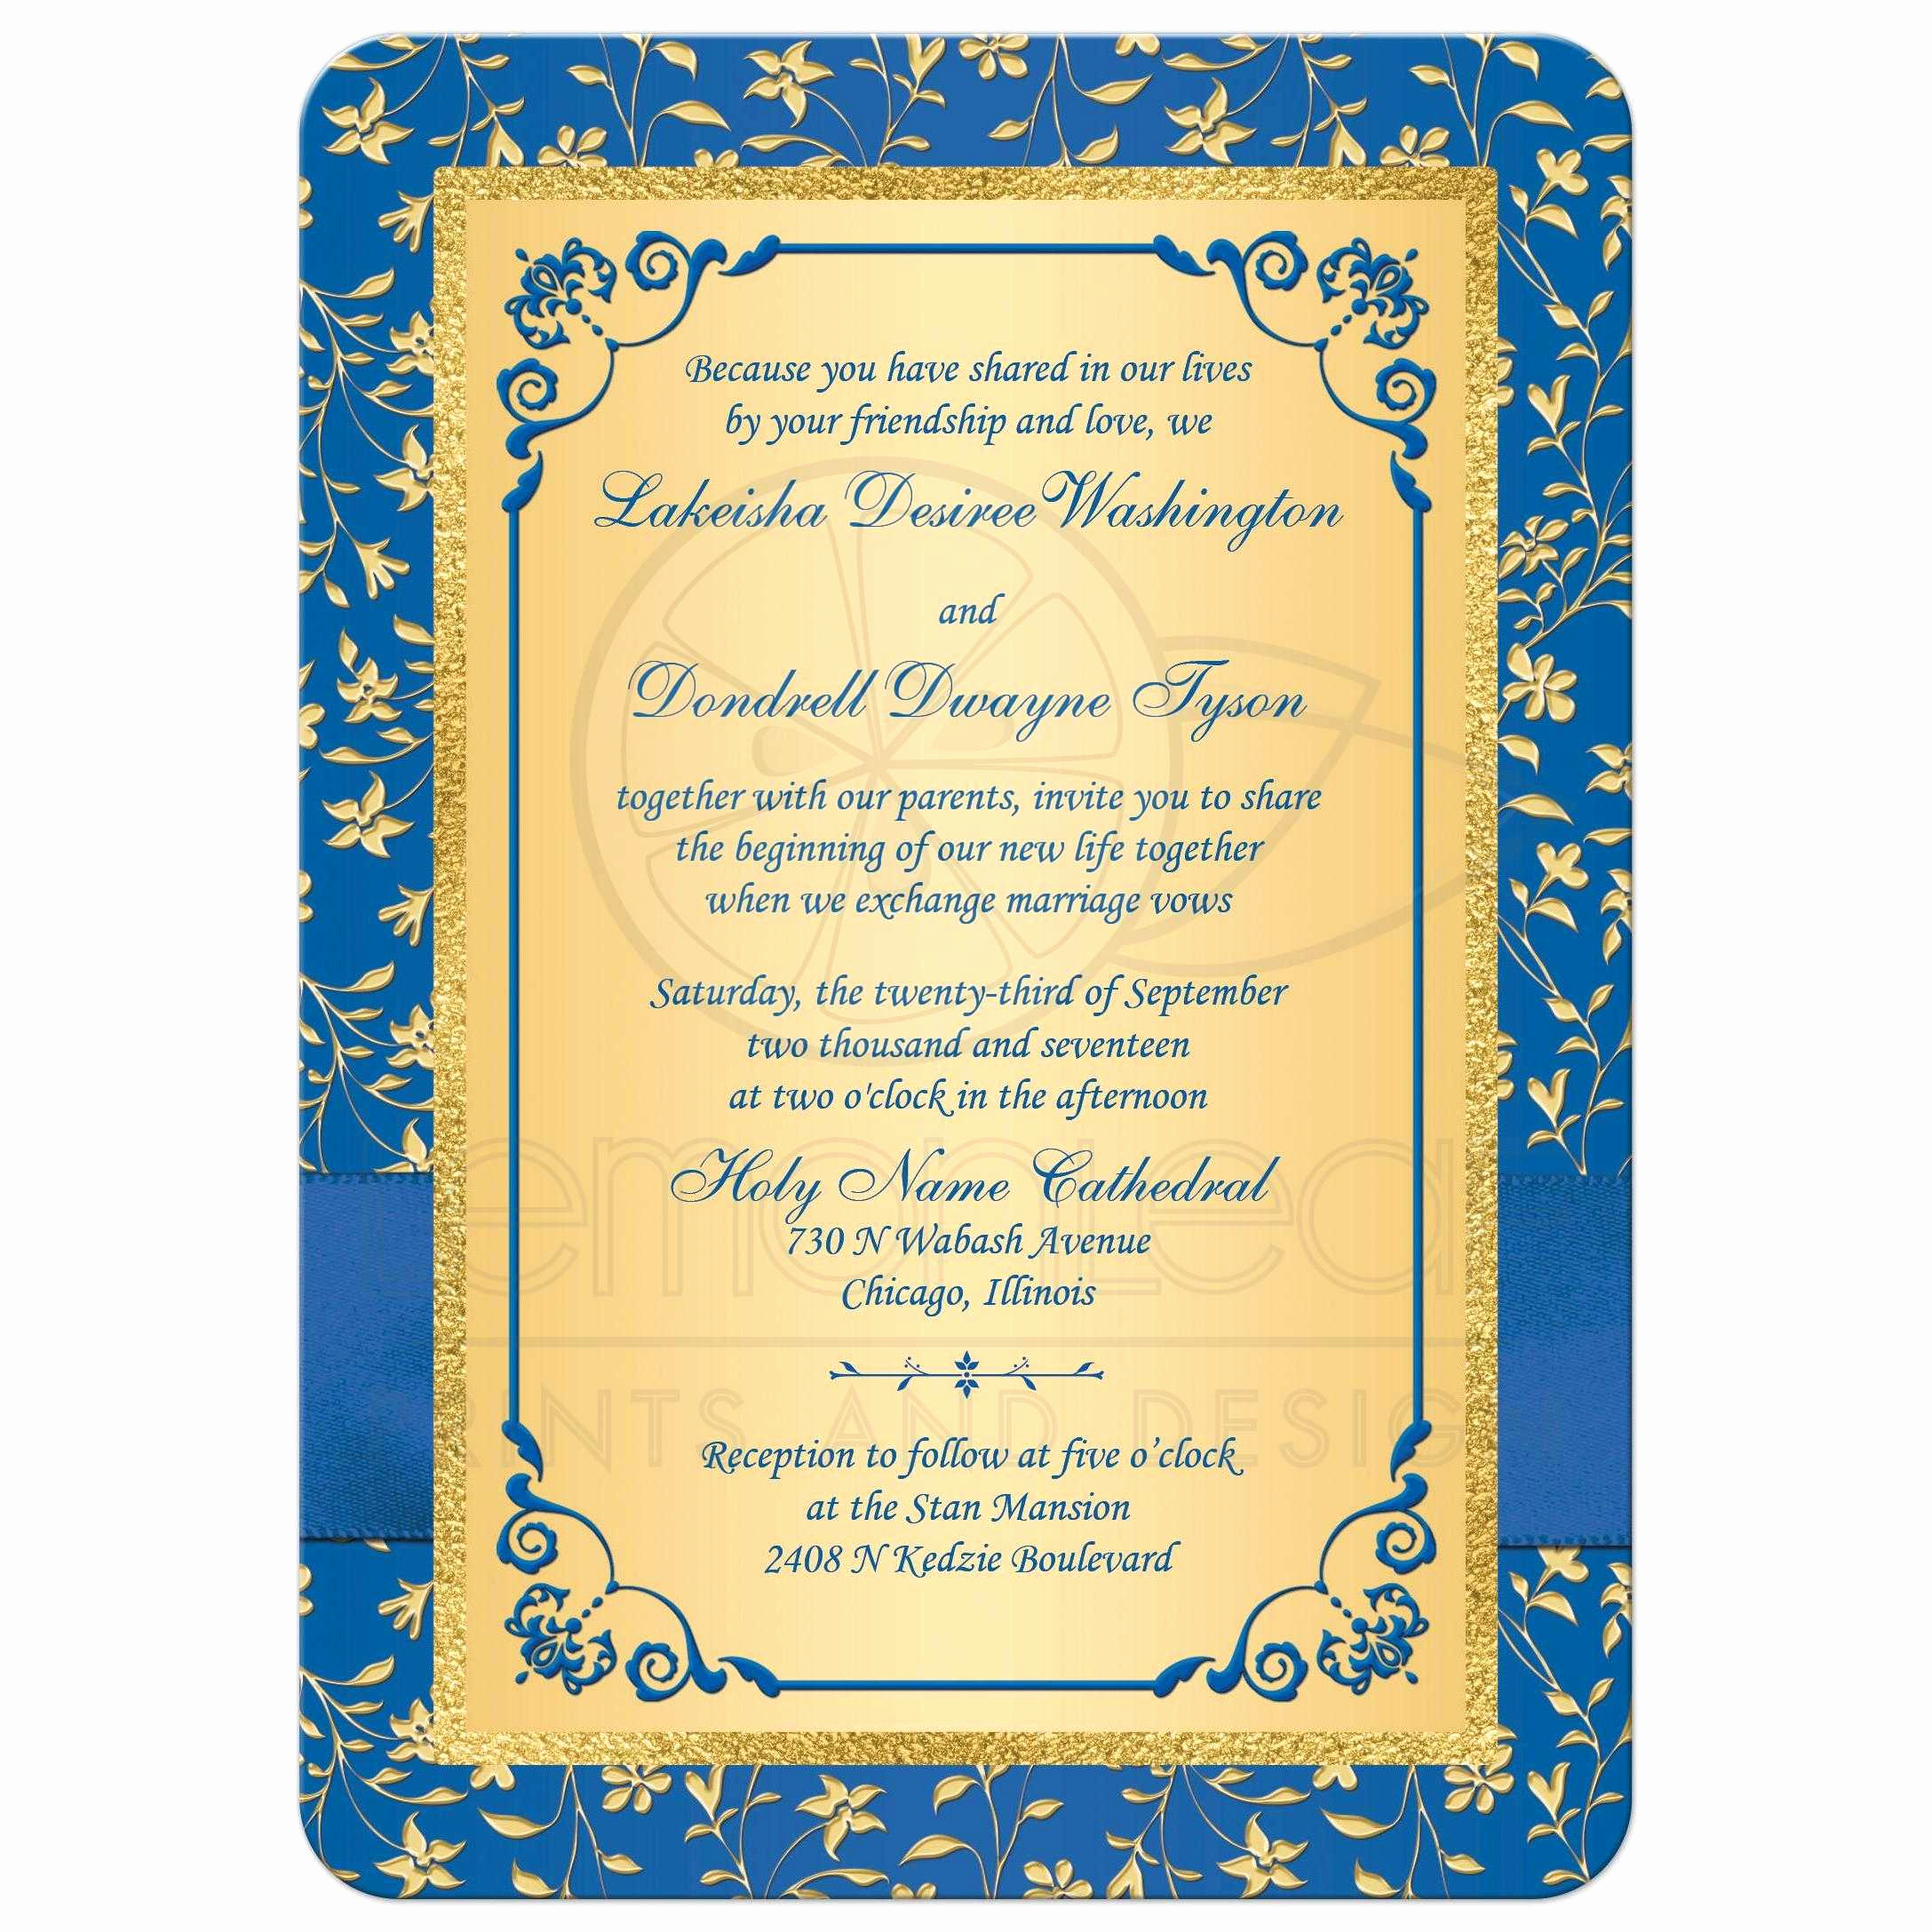 Blue and Gold Invitation Template Elegant Wedding Invitation Printed Ribbon Bow Double